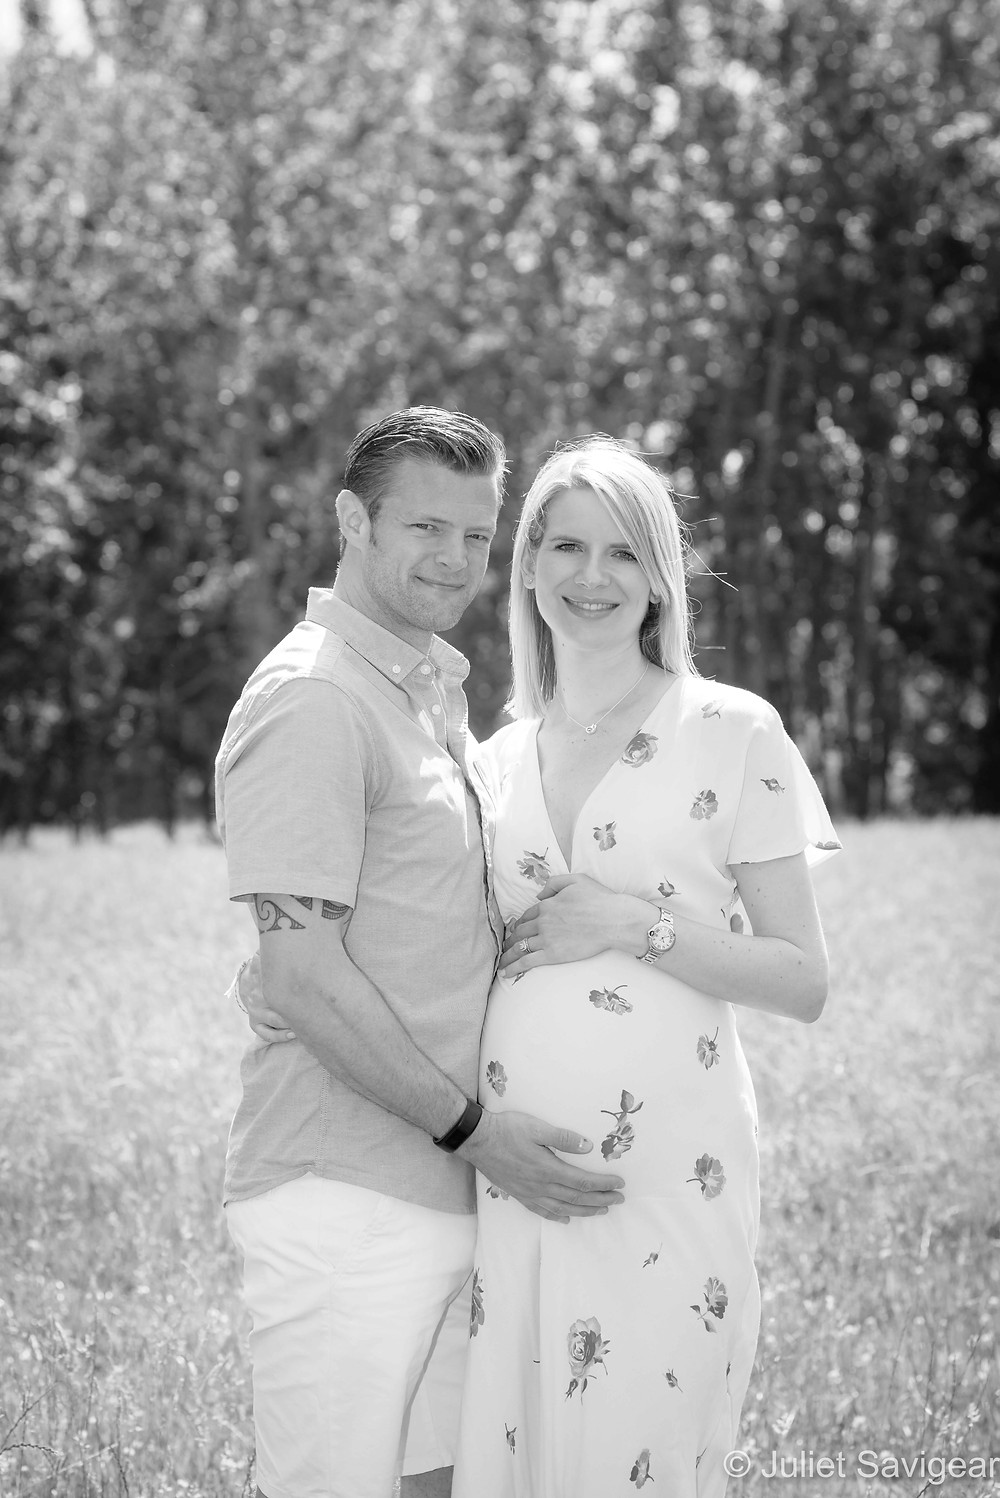 Summer maternity photography